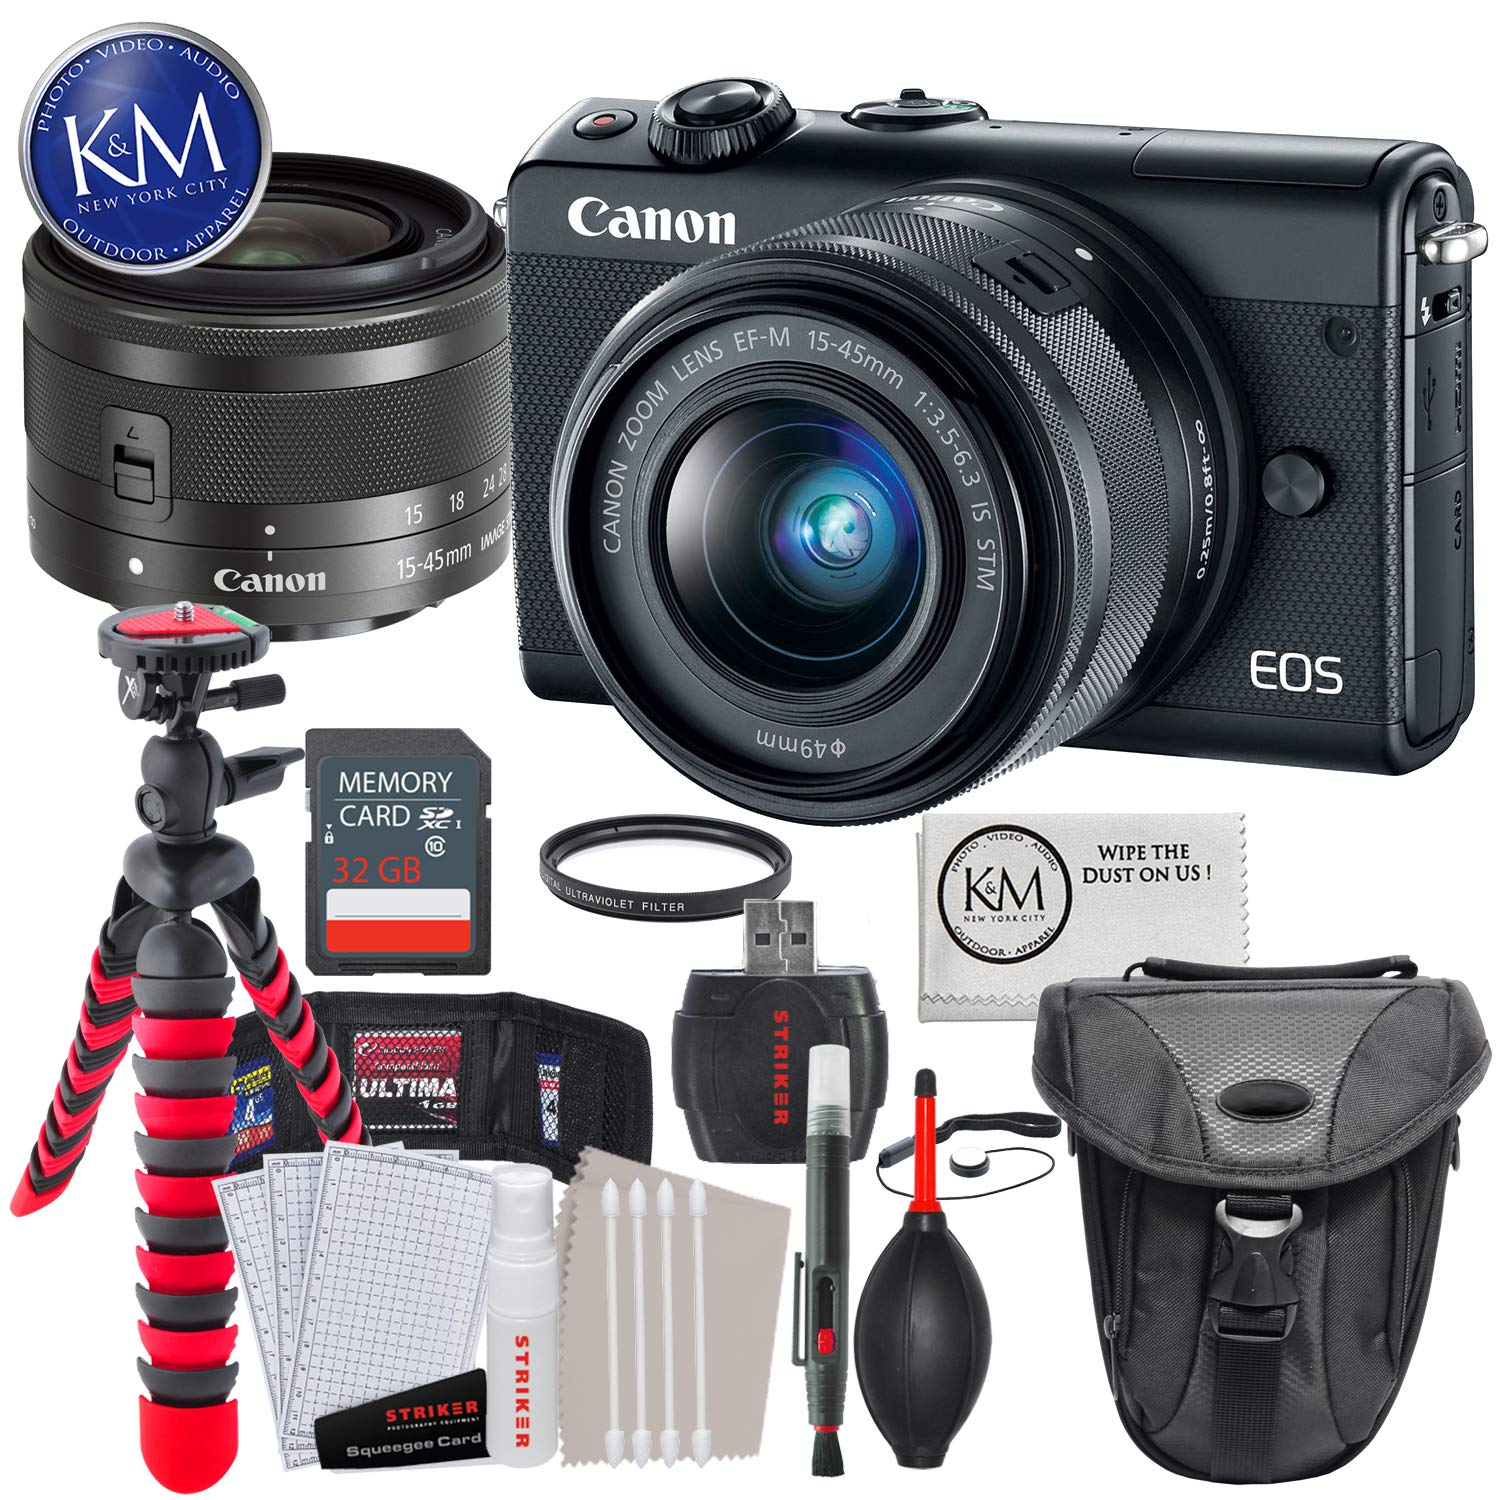 Canon EOS M100 Mirrorless Digital Camera with 15-45mm Lens (Black) + Essential Photo Bundle by K&M